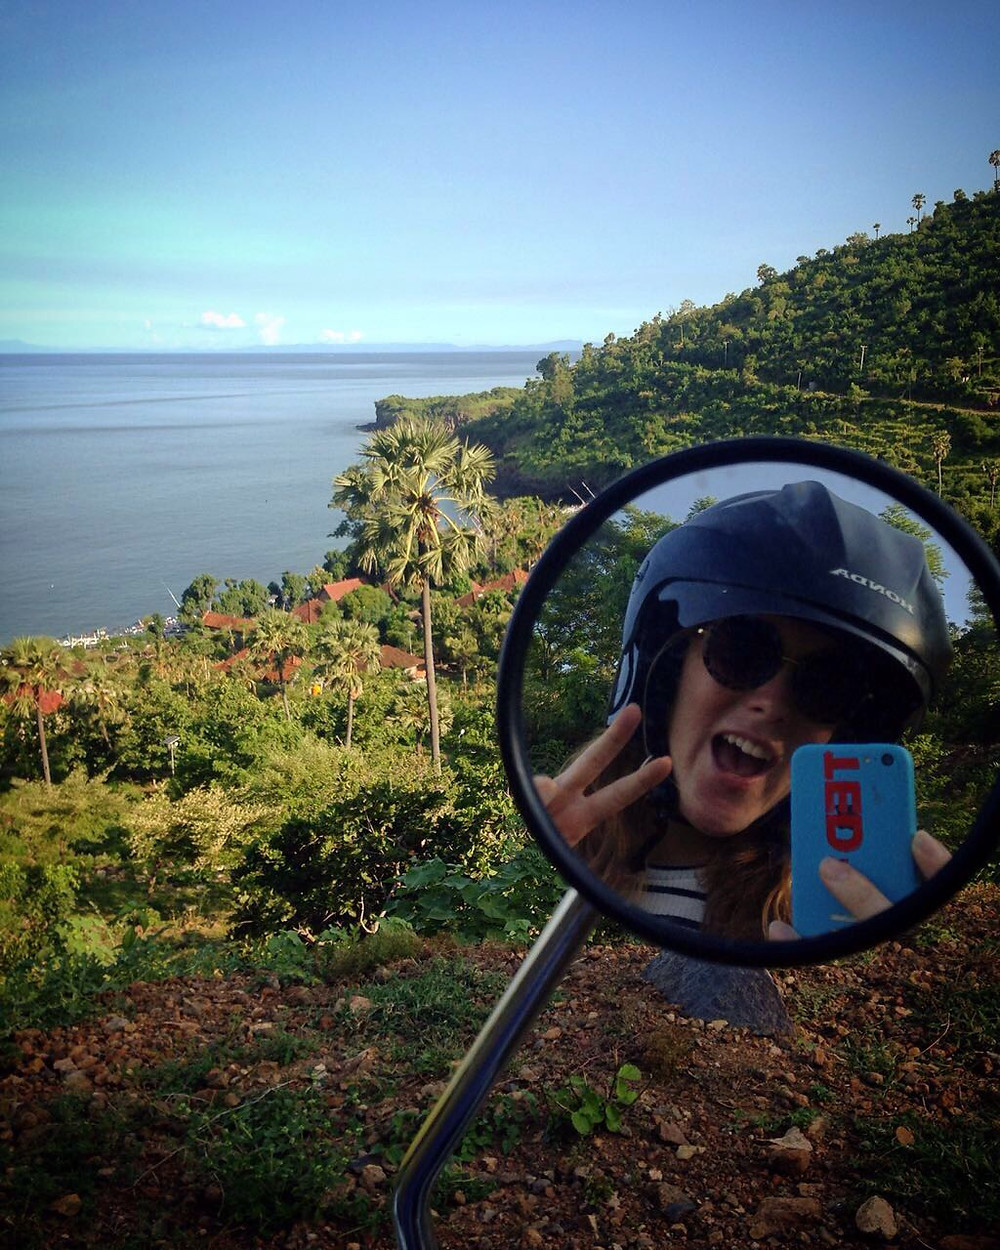 Scootering and selfie-ing down the Amed coastline